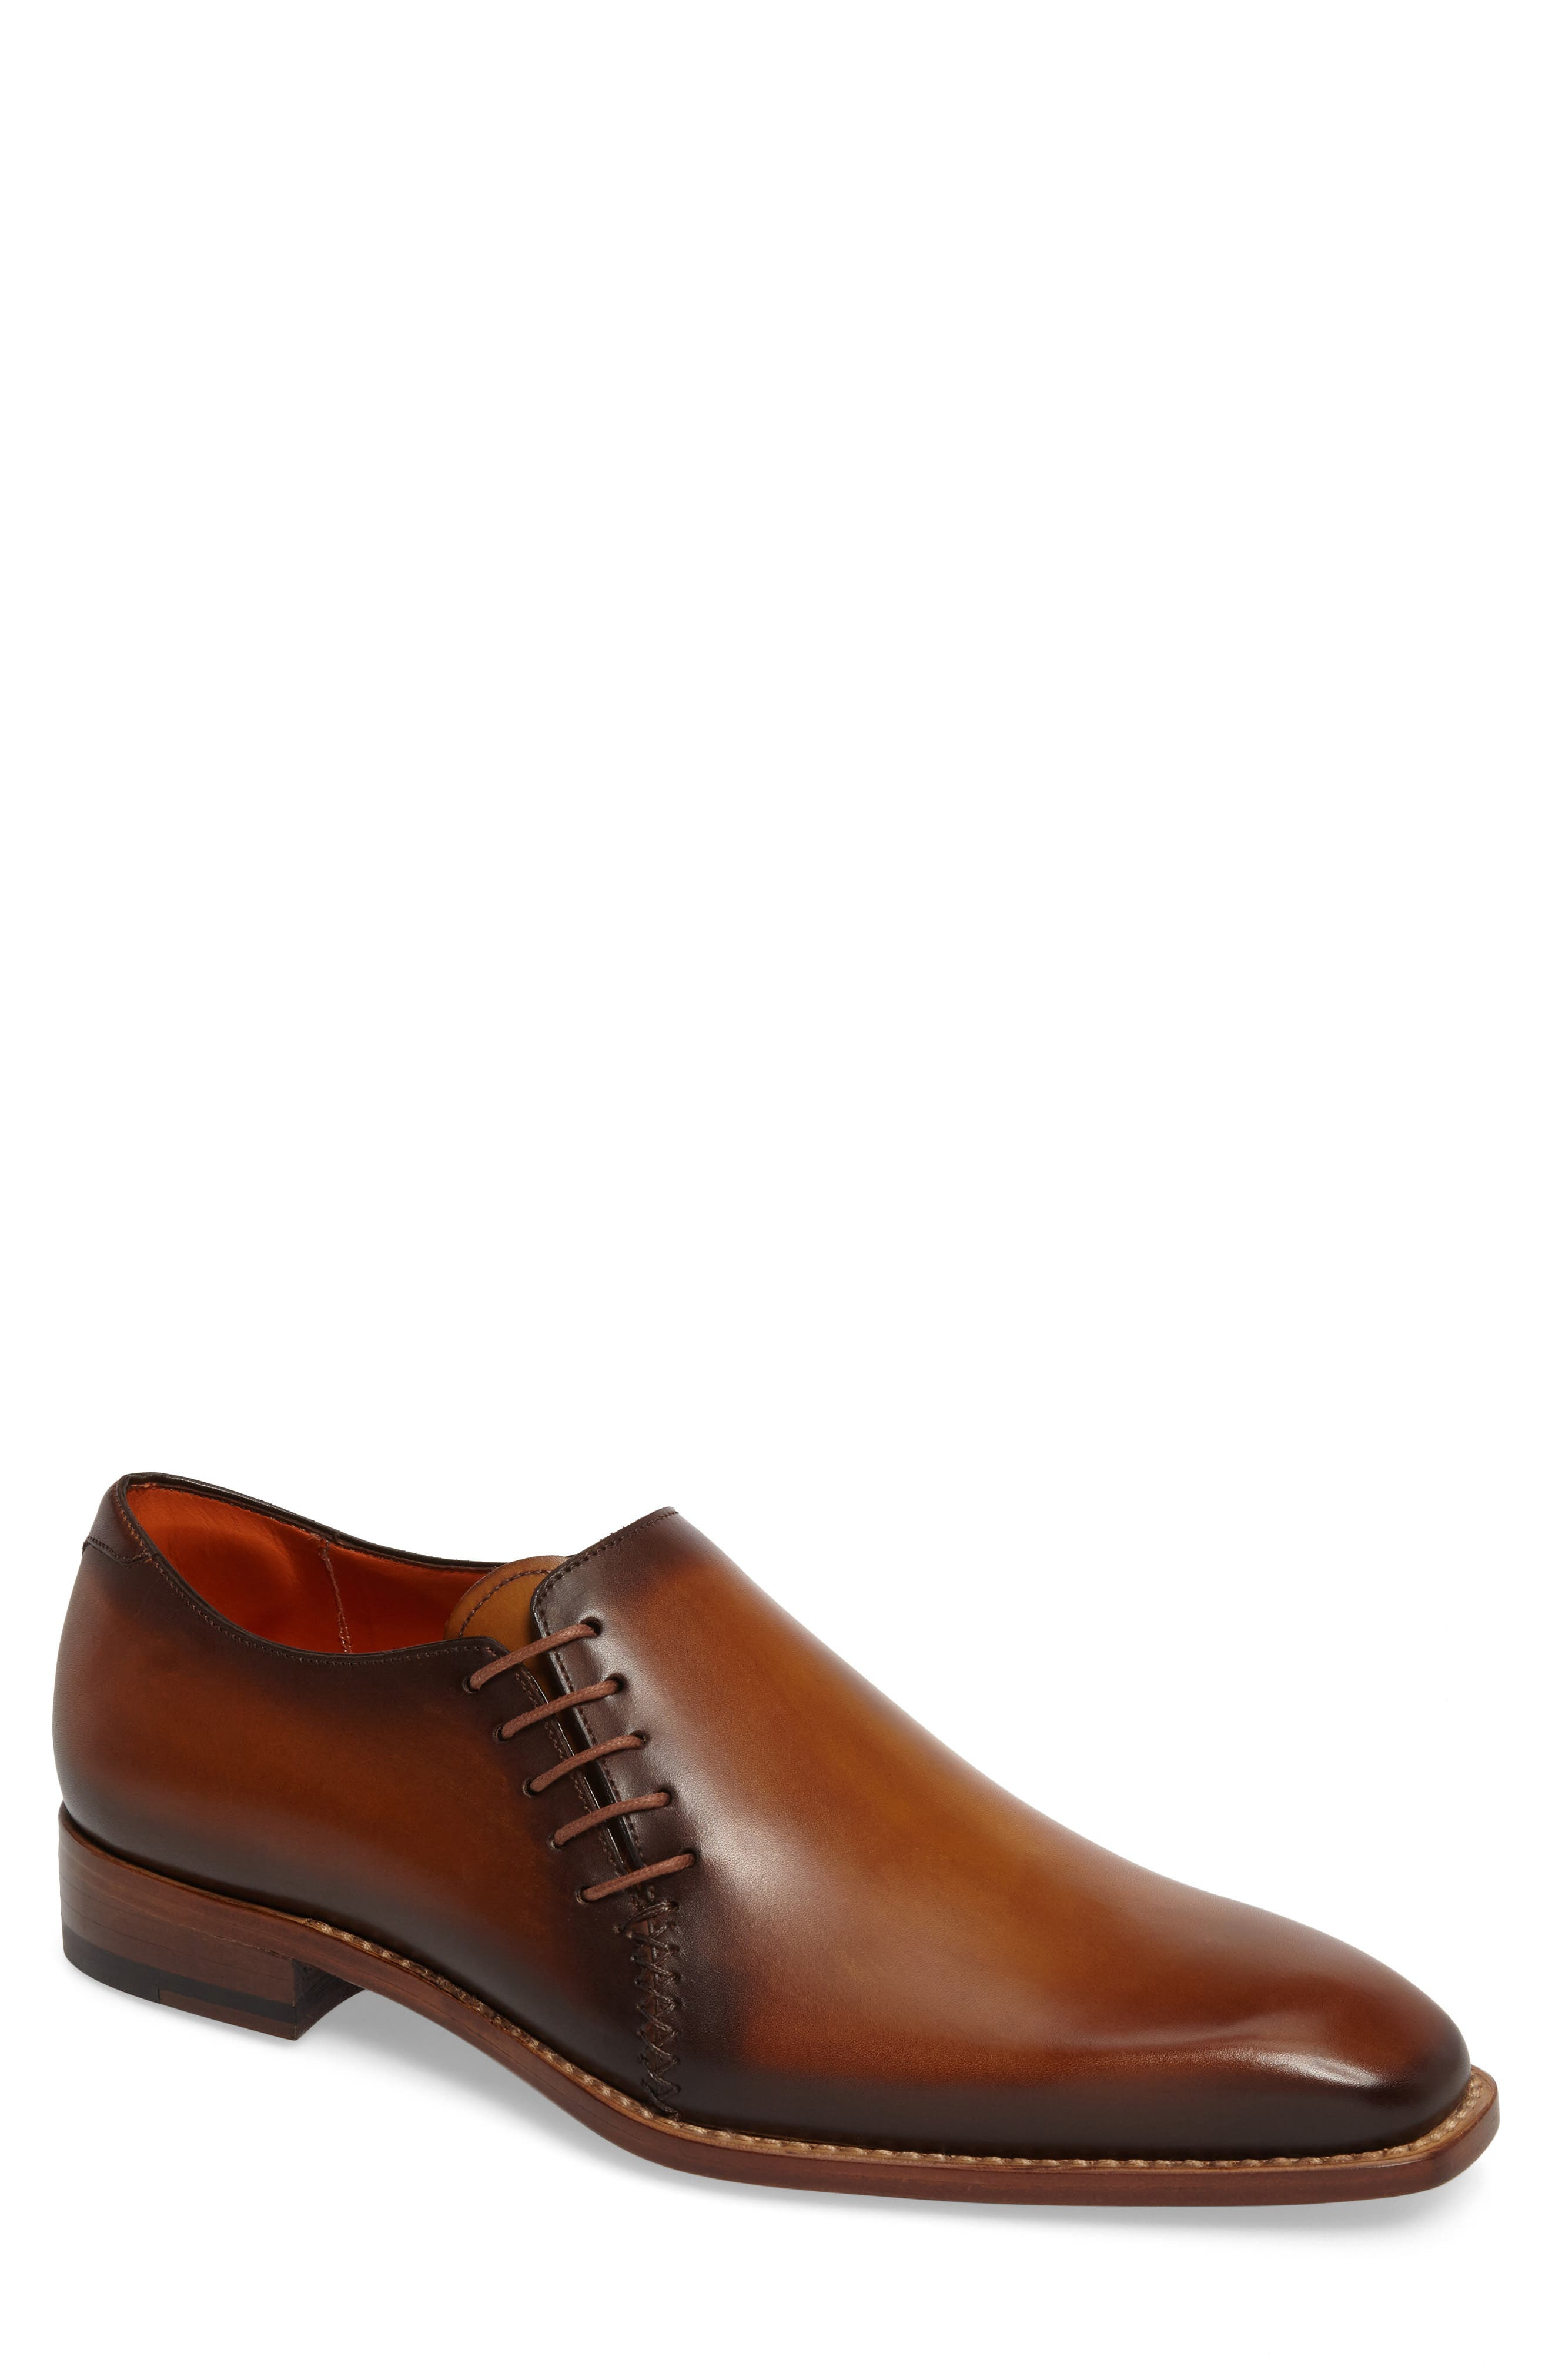 MEZLAN Master Wholecut Oxford, Main, color, HONEY LEATHER